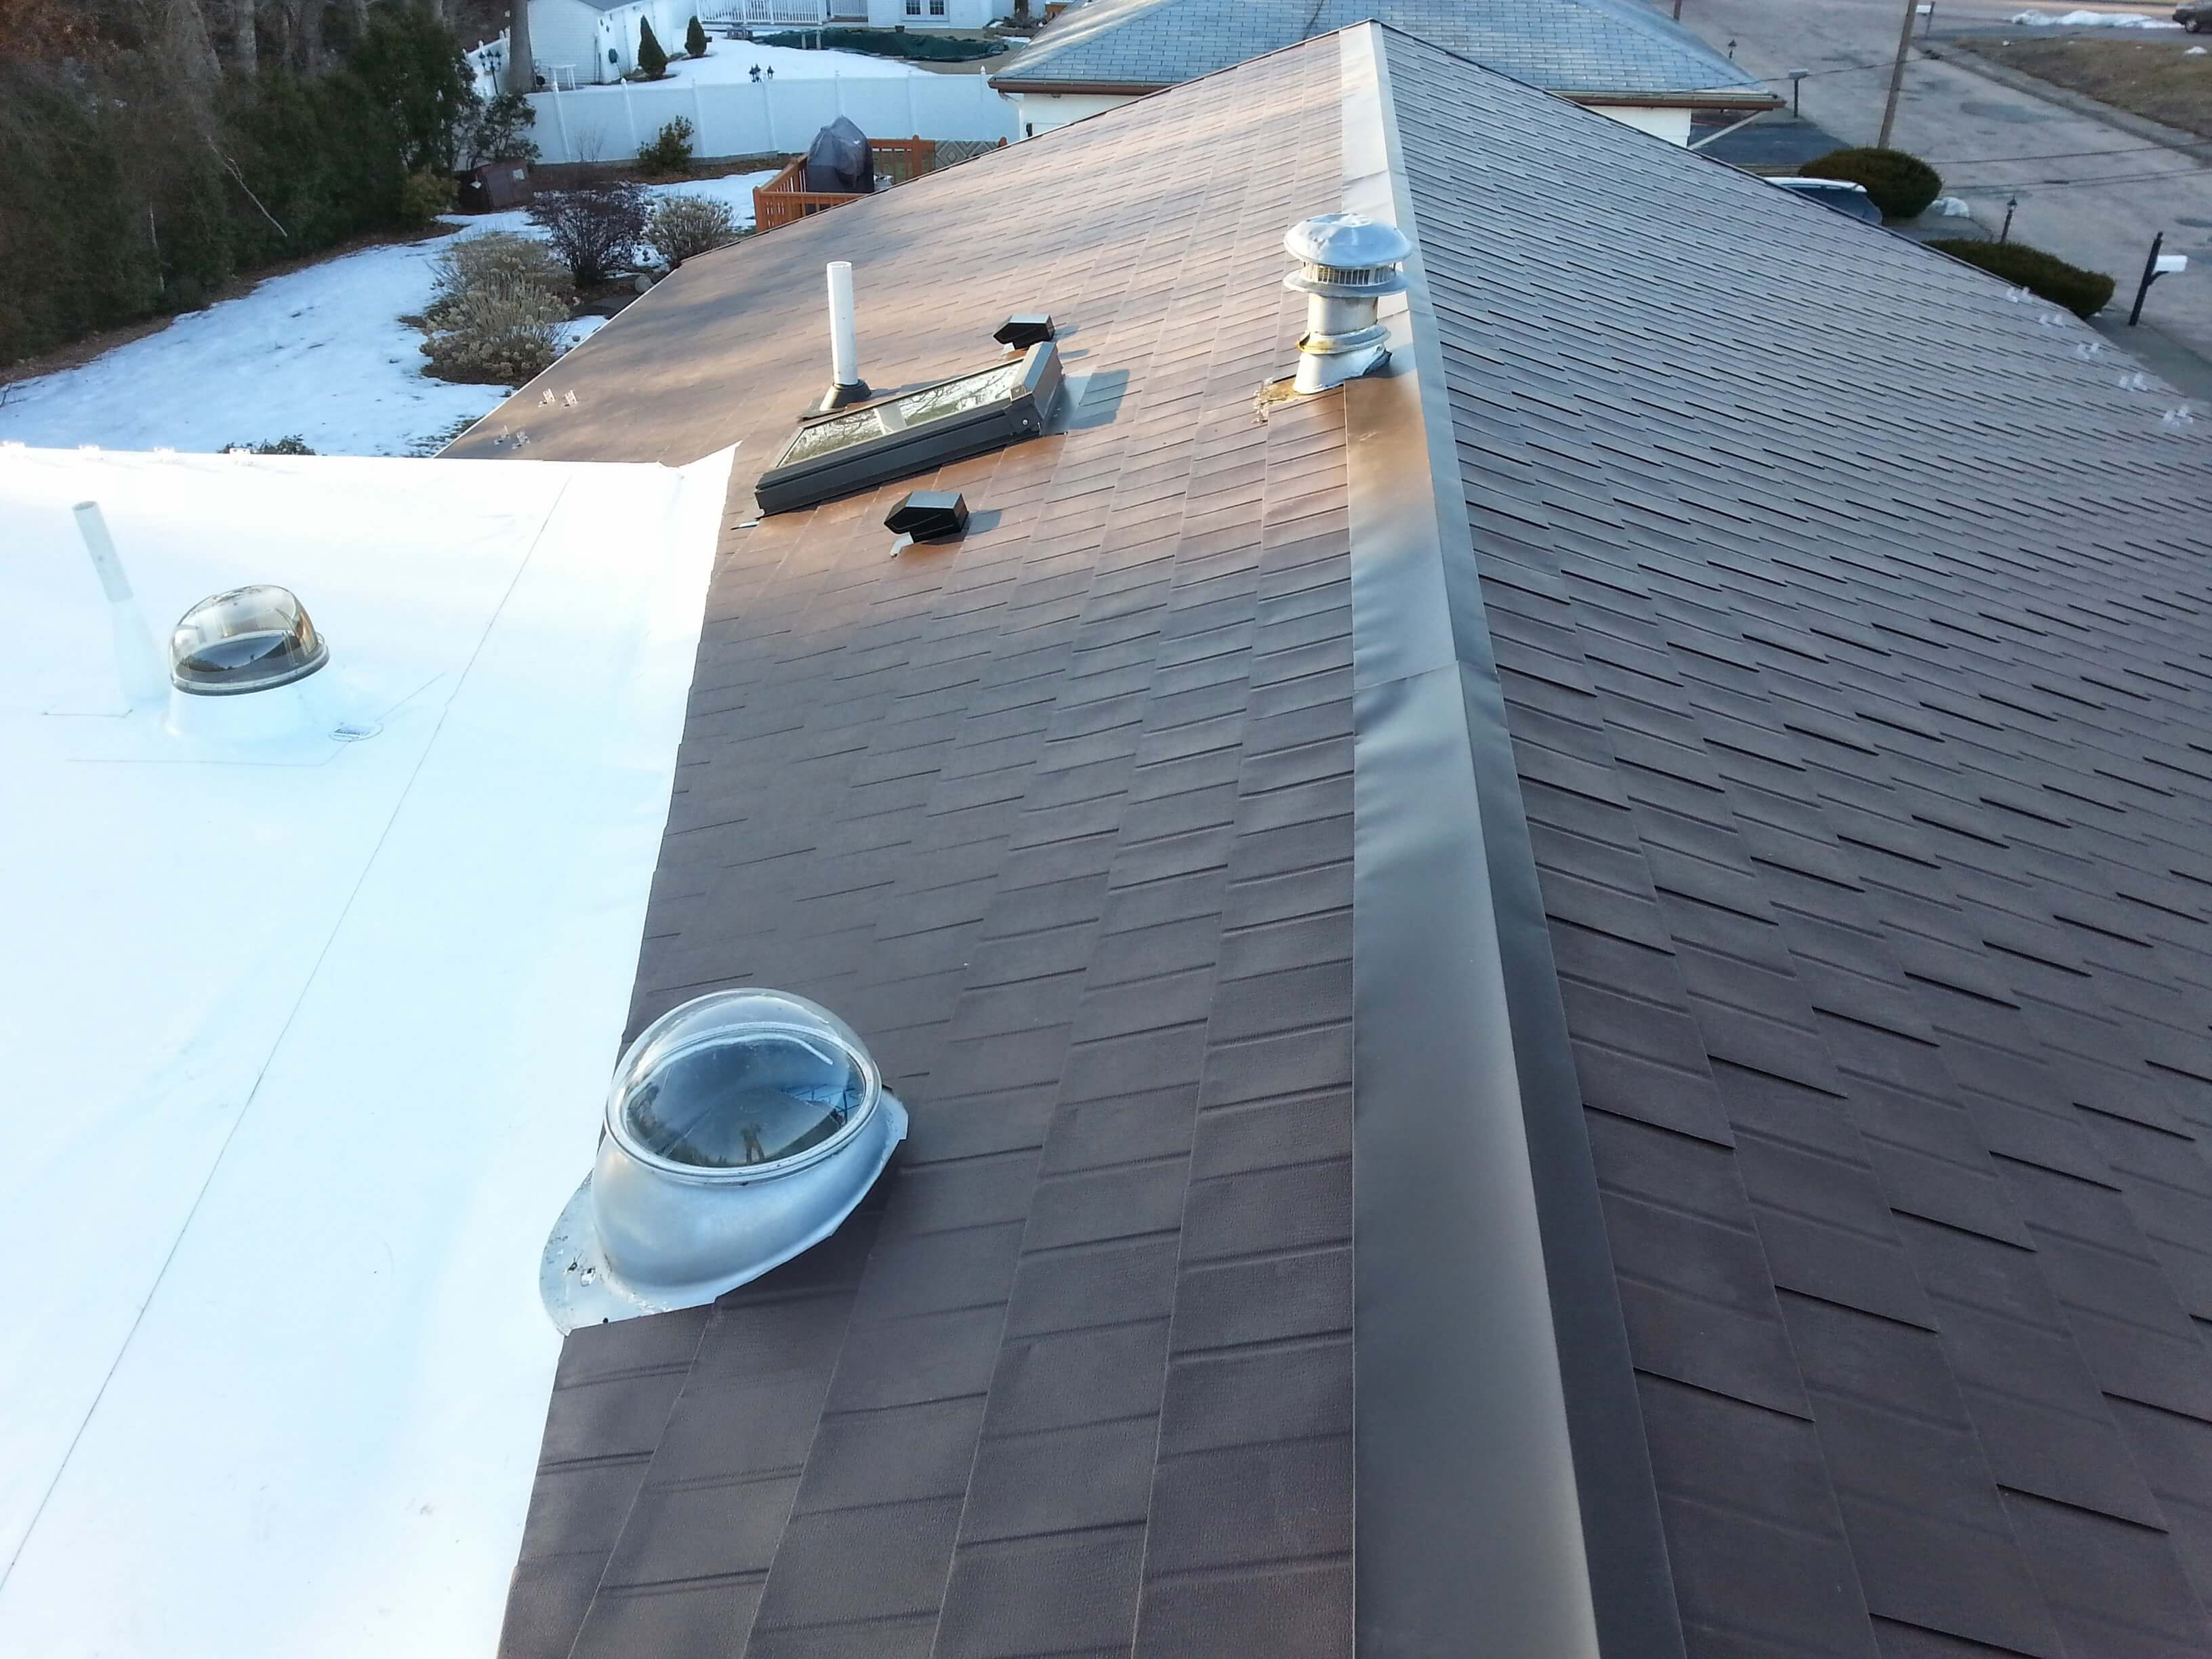 How To Install Flat Roof Shingles Best Image Voixmag Com